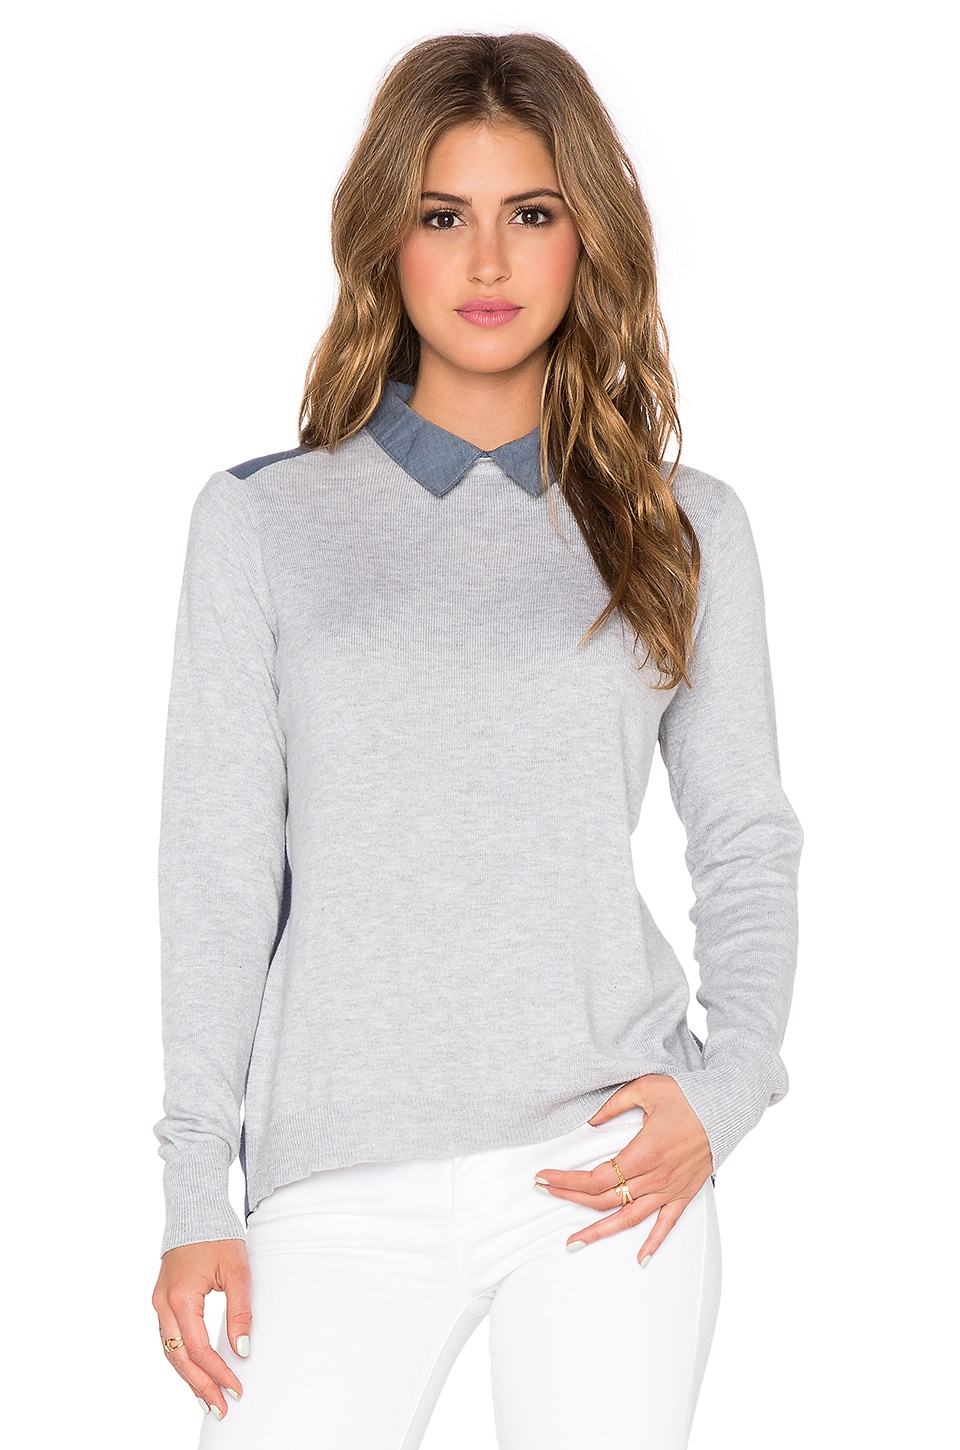 Central Park West Cologne Collard Sweater in Heather Grey & Chambray